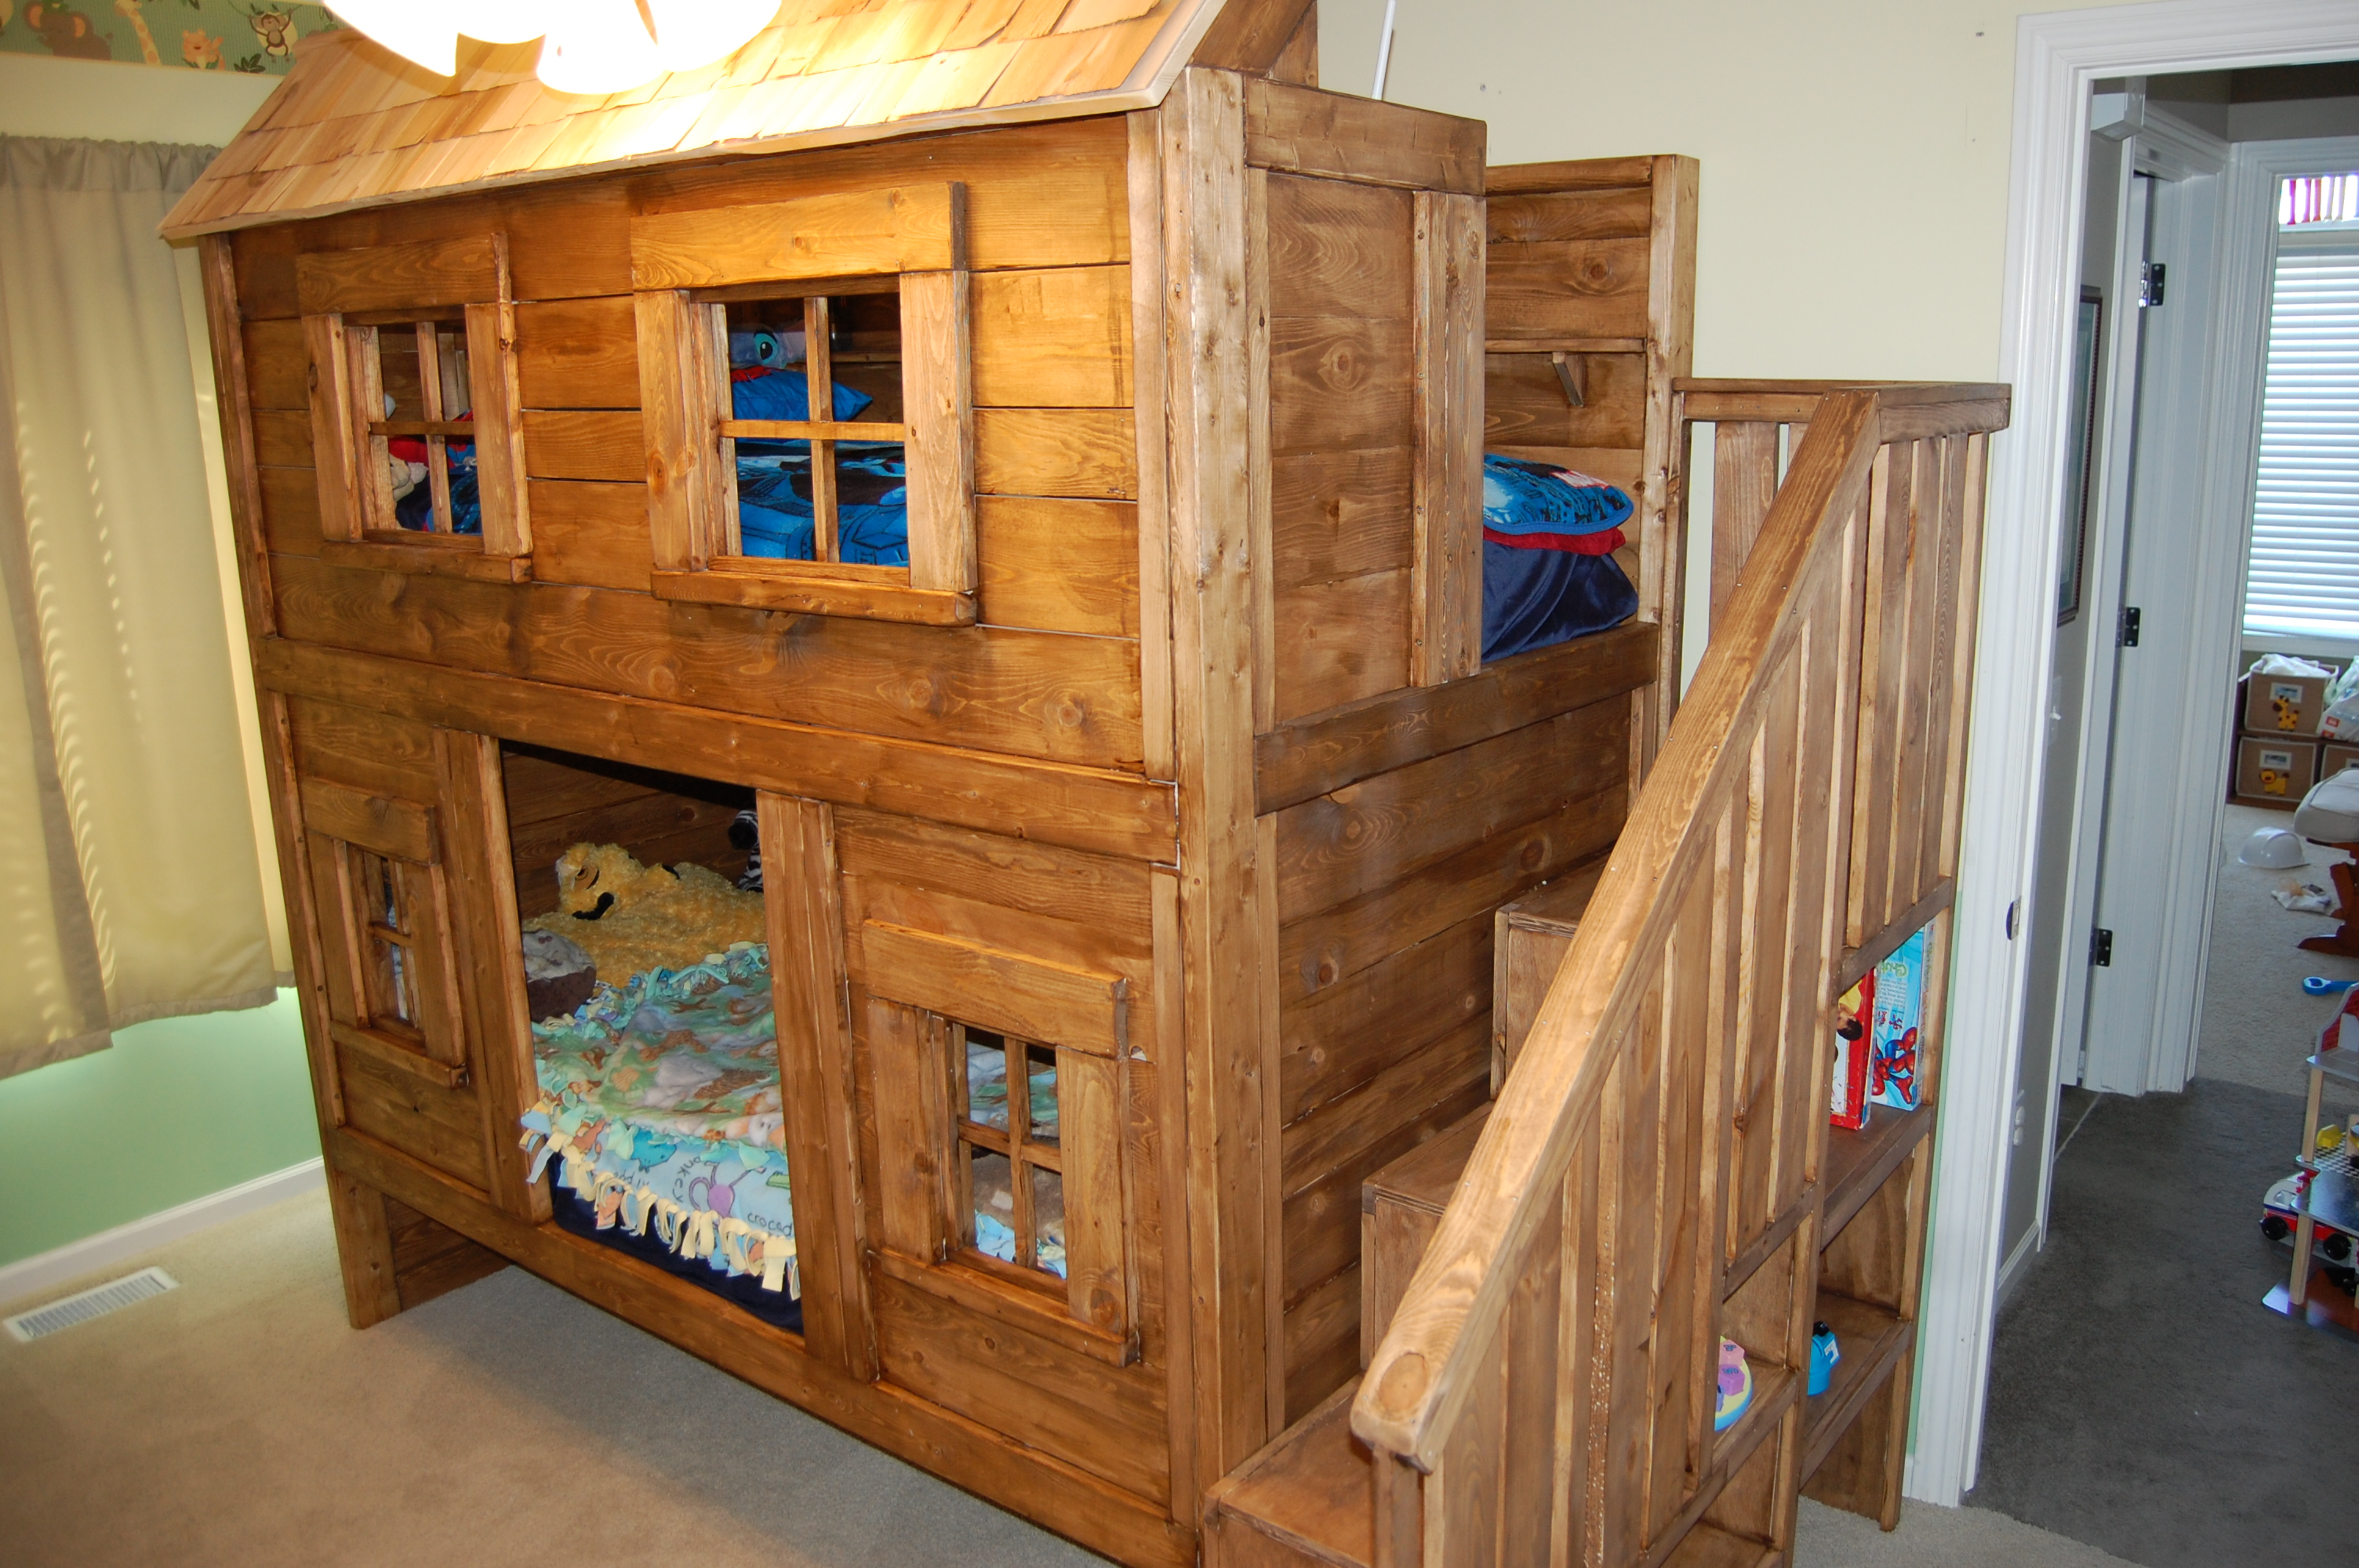 Do It Yourself Home Design: Rustic Cabin Bunk Bed - DIY Projects